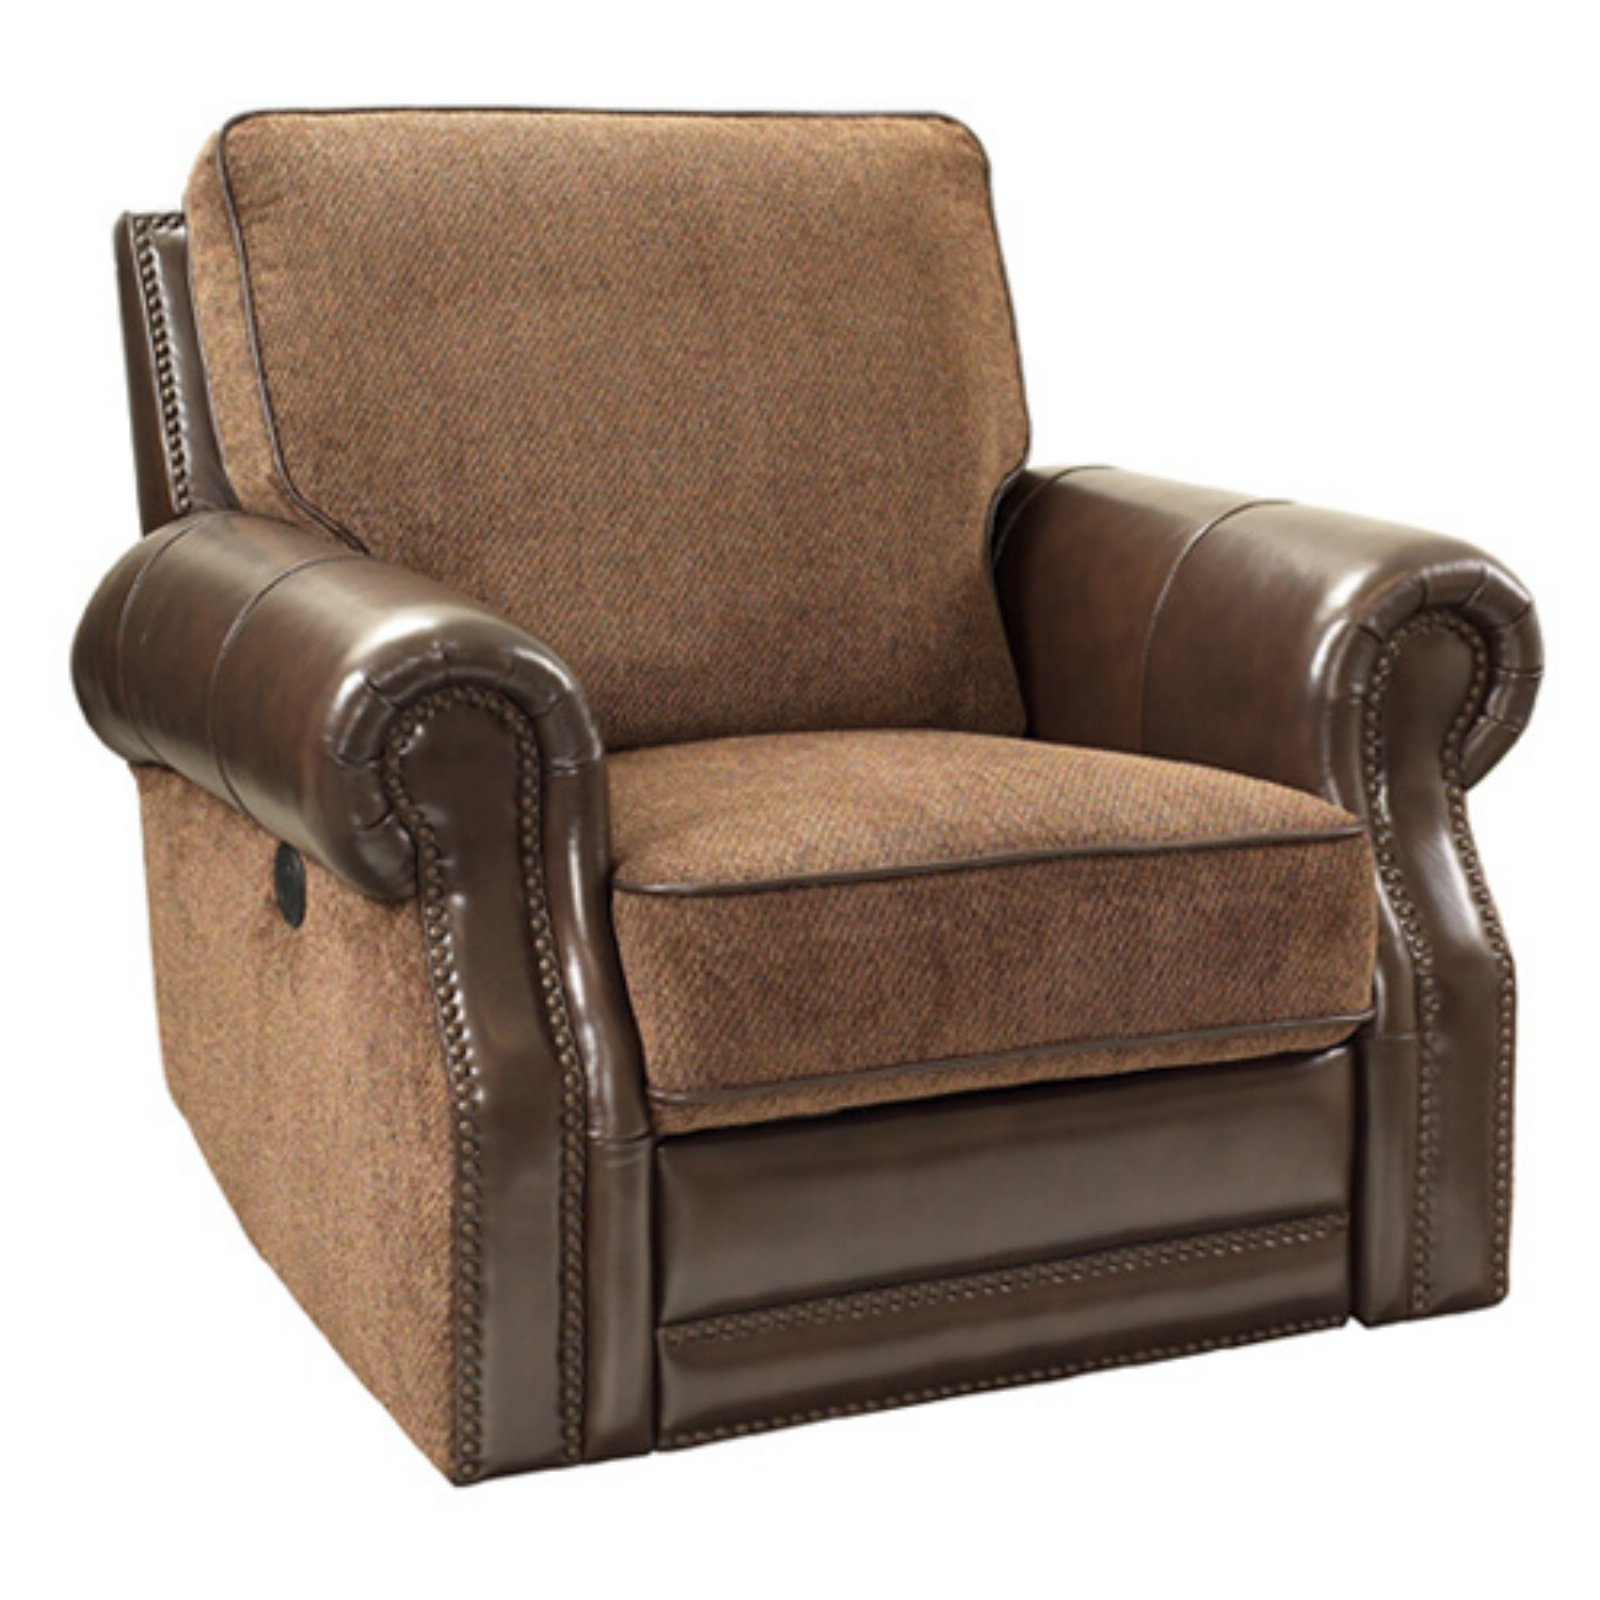 Barcalounger Vintage Jefferson Power Recliner